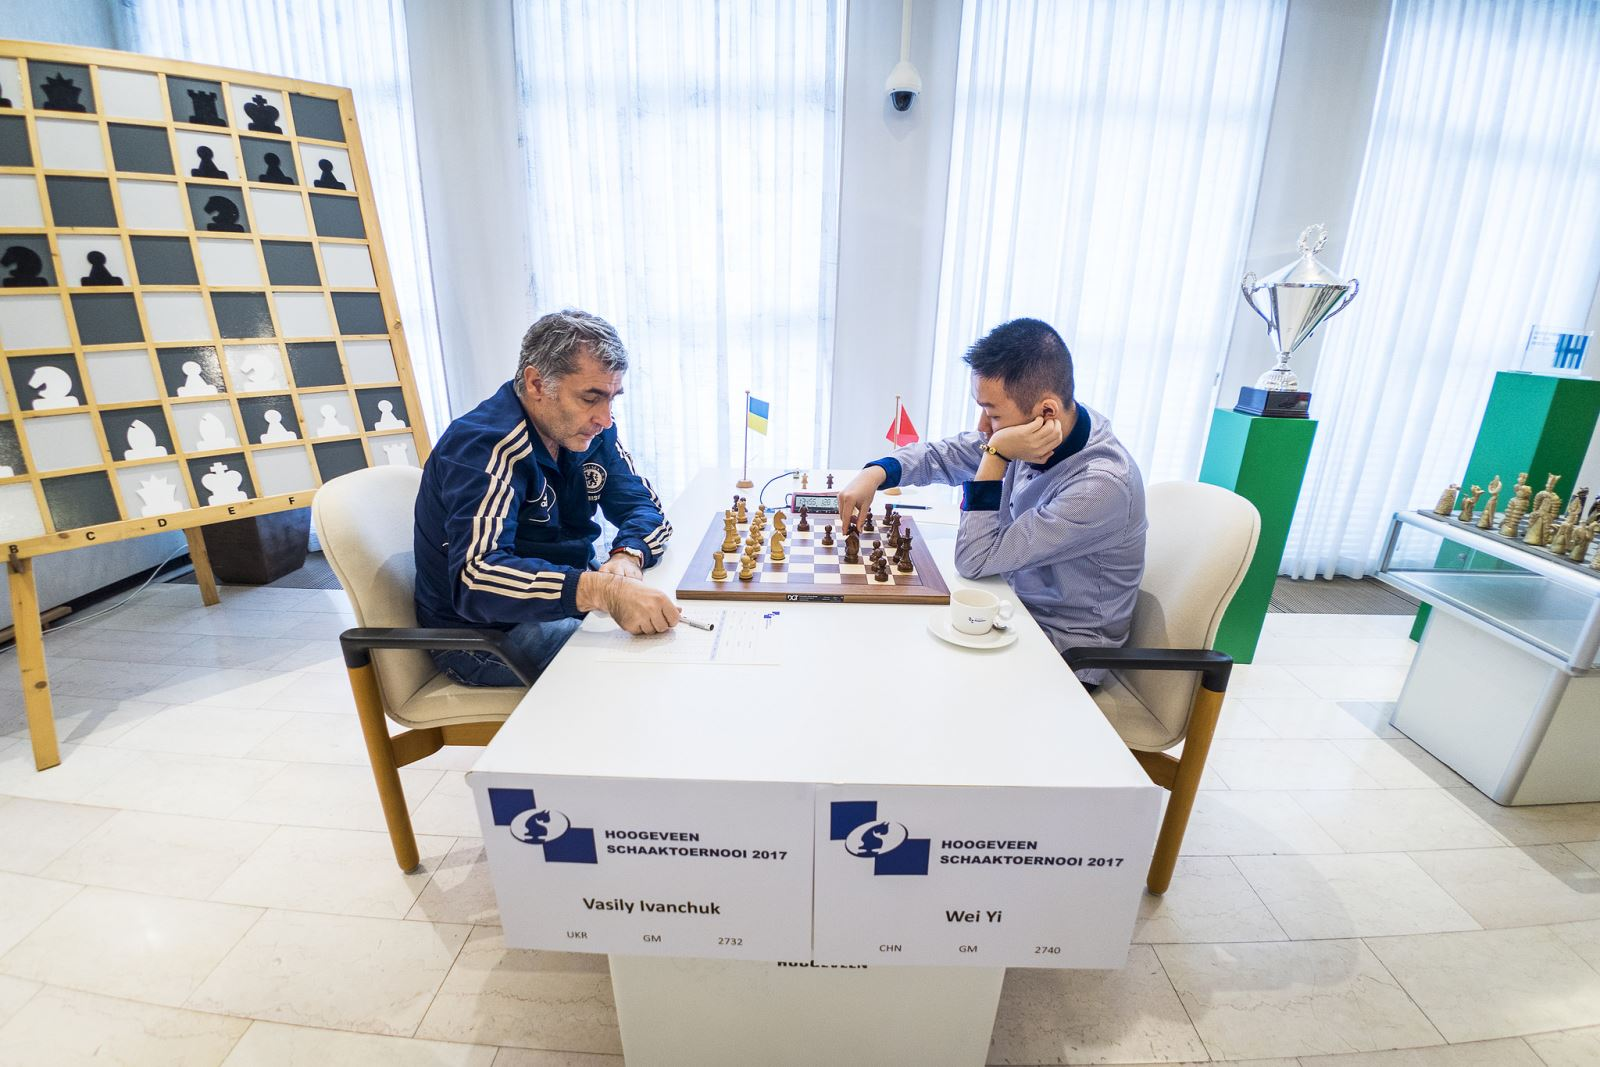 Vassily Ivanchuk and Wei Yi playing their fifth round game